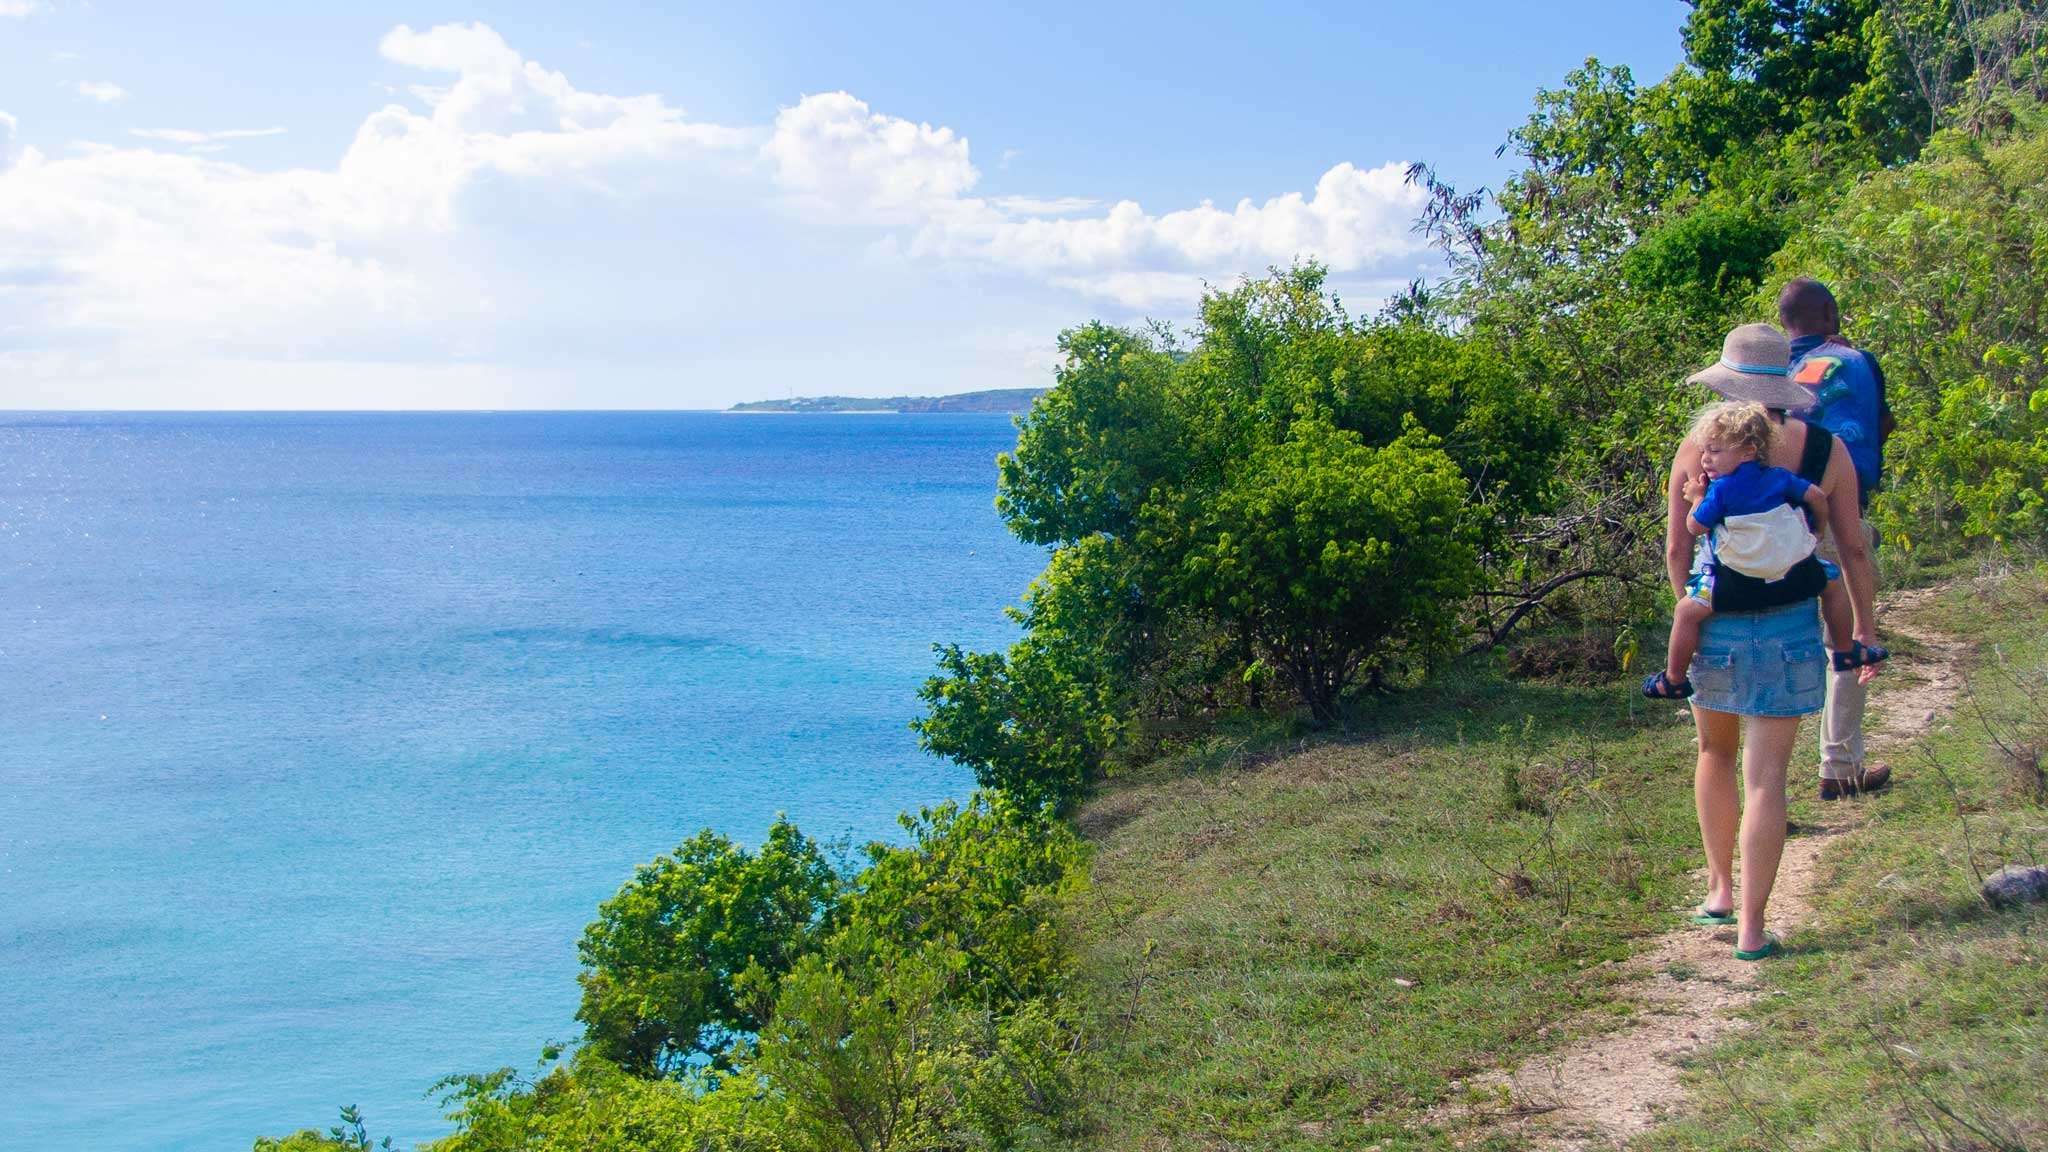 Hiking to Little Bay Anguilla by Patrick Bennett